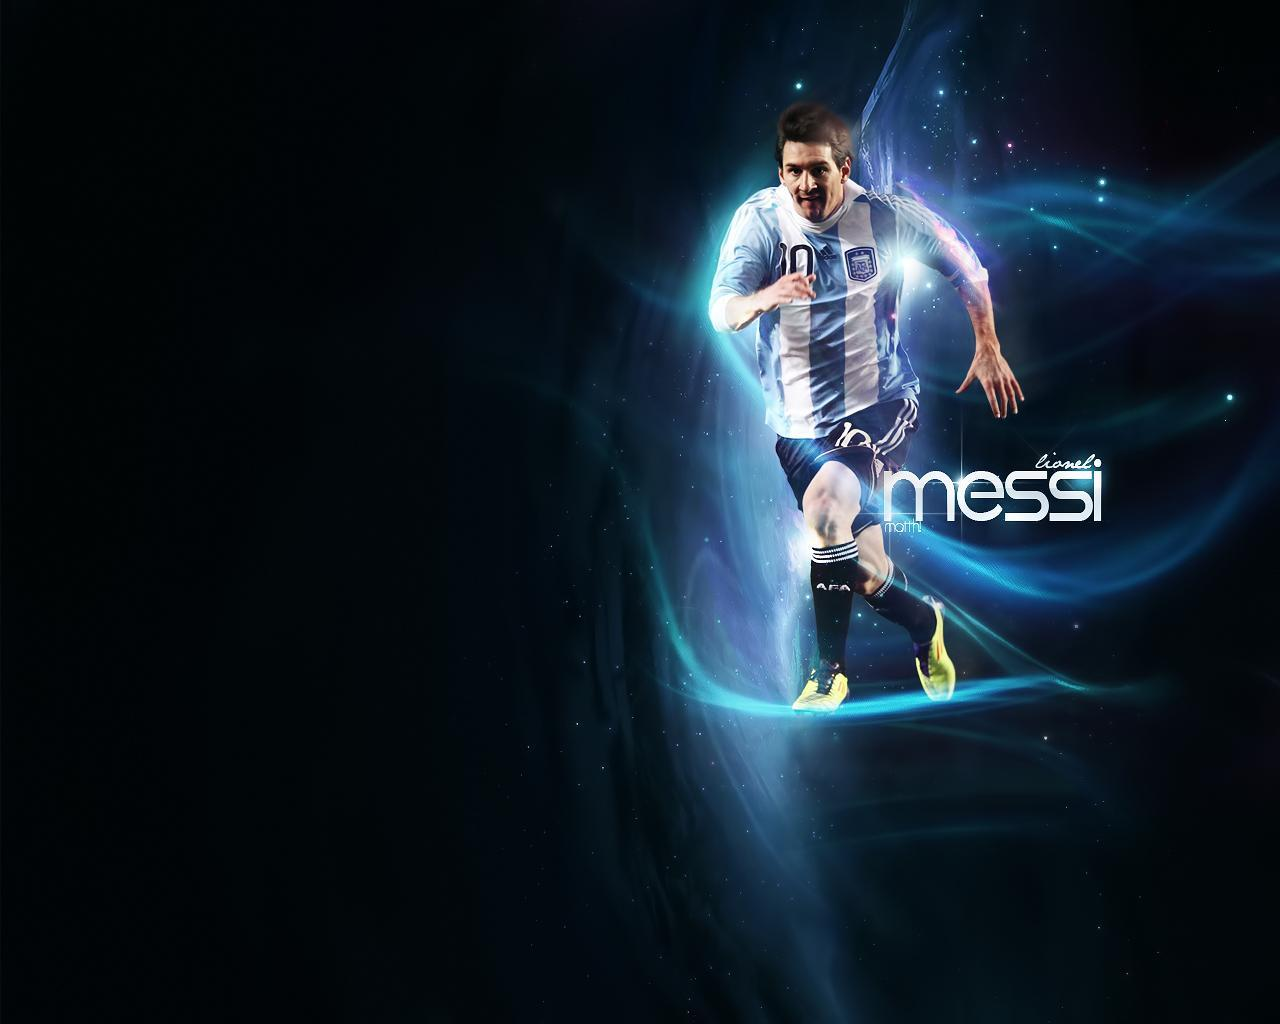 Lionel Messi HD Wallpapers 1080p - Football Wallpaper HD, Football ...